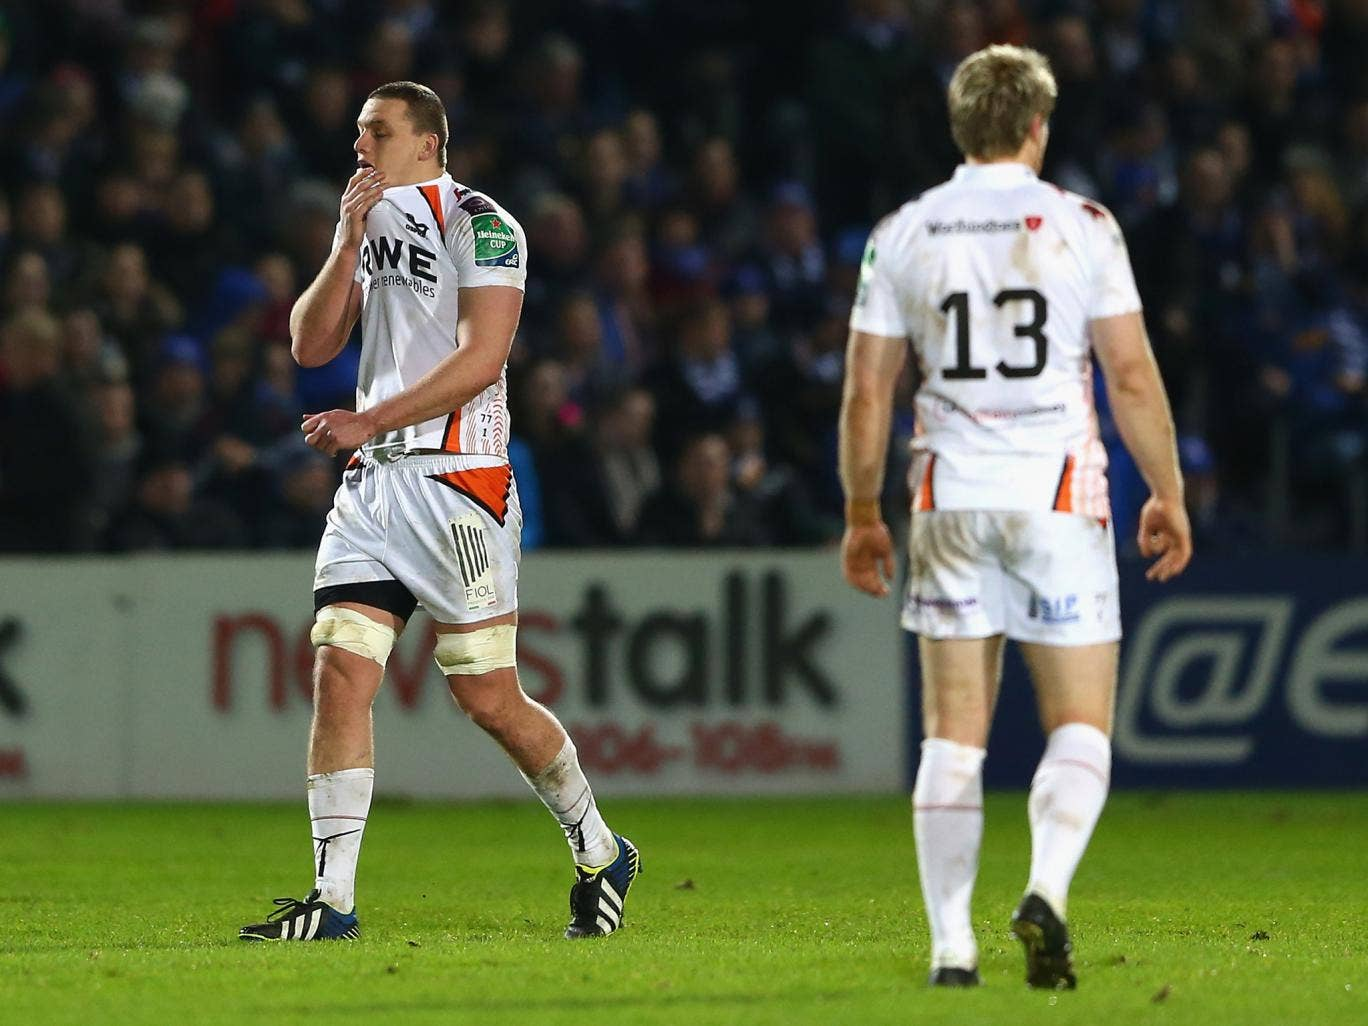 Ian Evans walks off the pitch after being sent-off during the Ospreys 36-3 defeat to Leinster